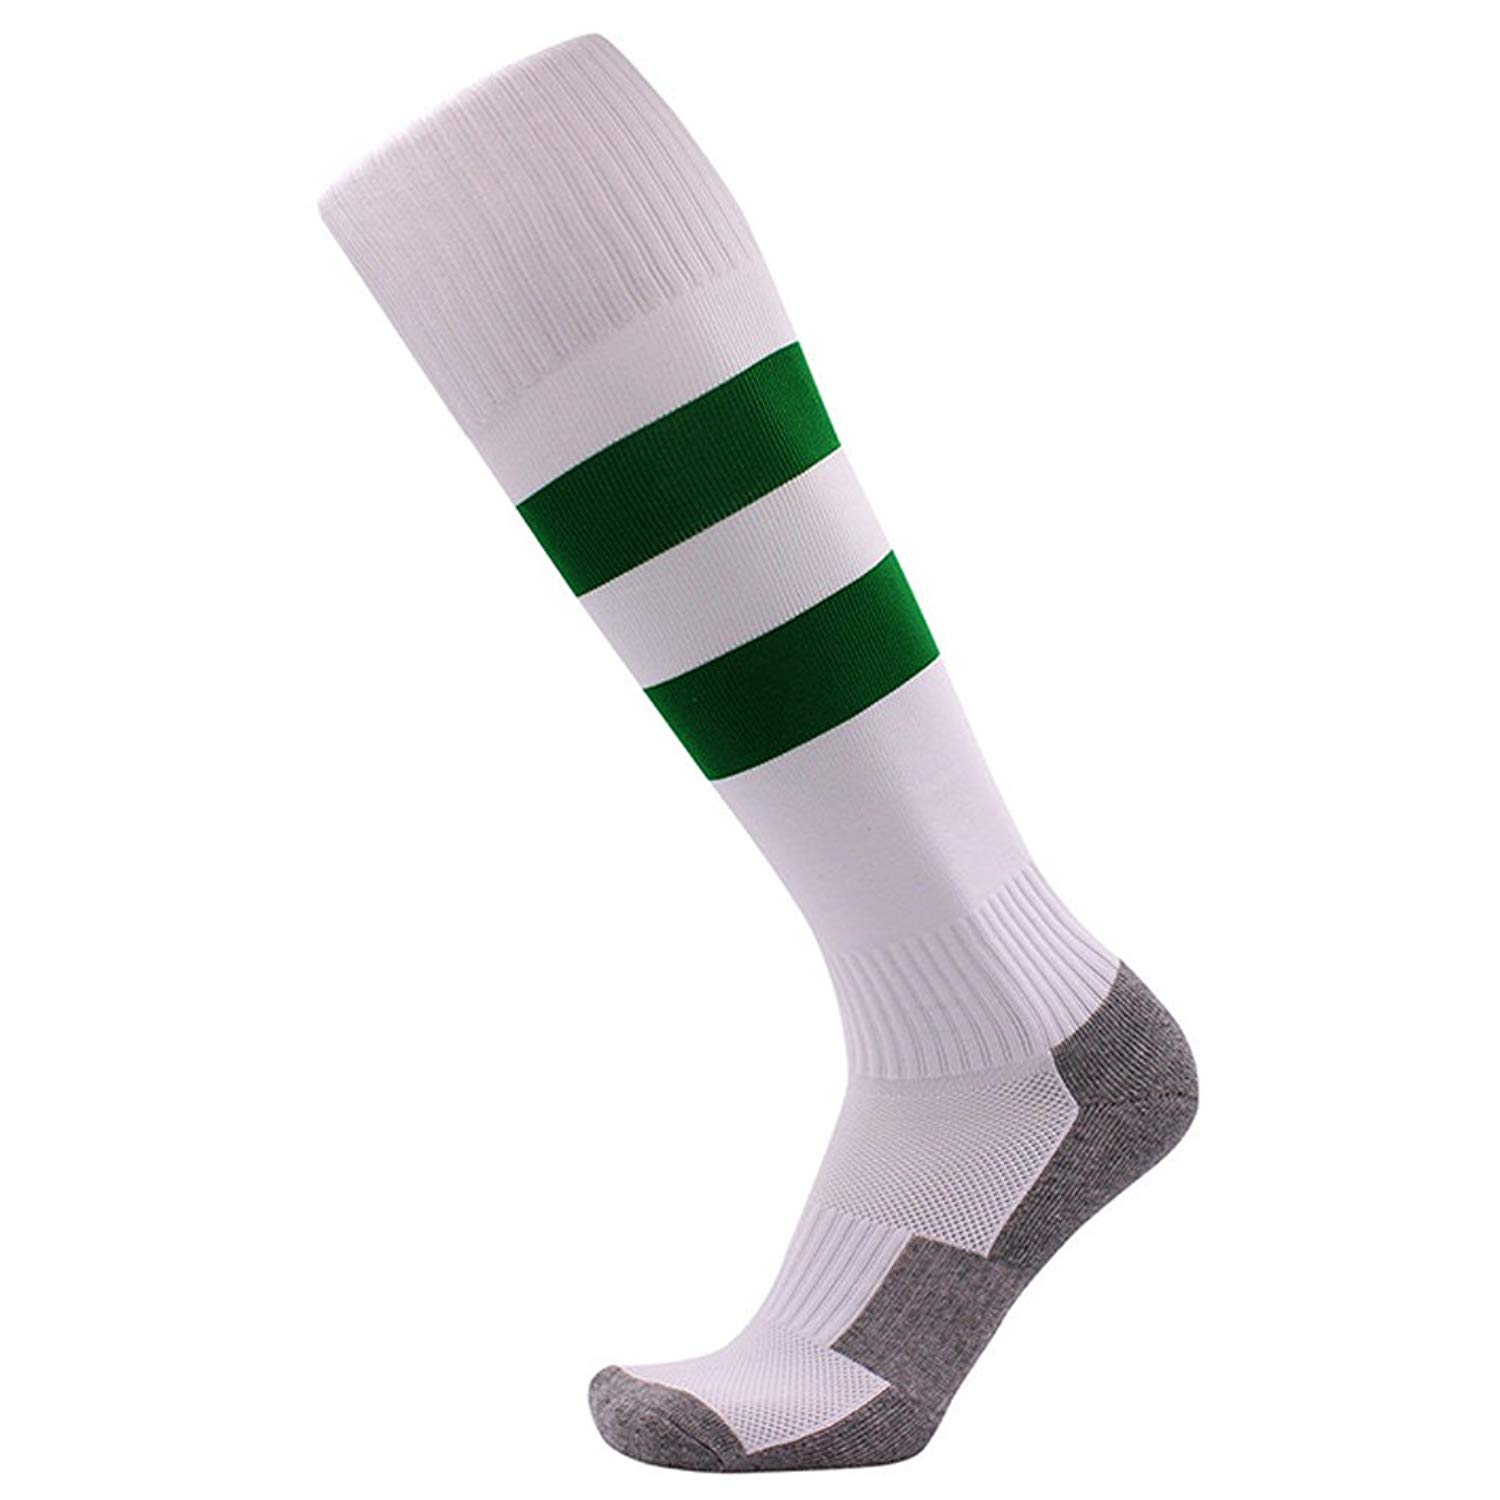 dcc078c3e Get Quotations · Nachvorn Little Boys/Girls Soccer Socks, Teens Knee High  Football Socks, Striped Rugby